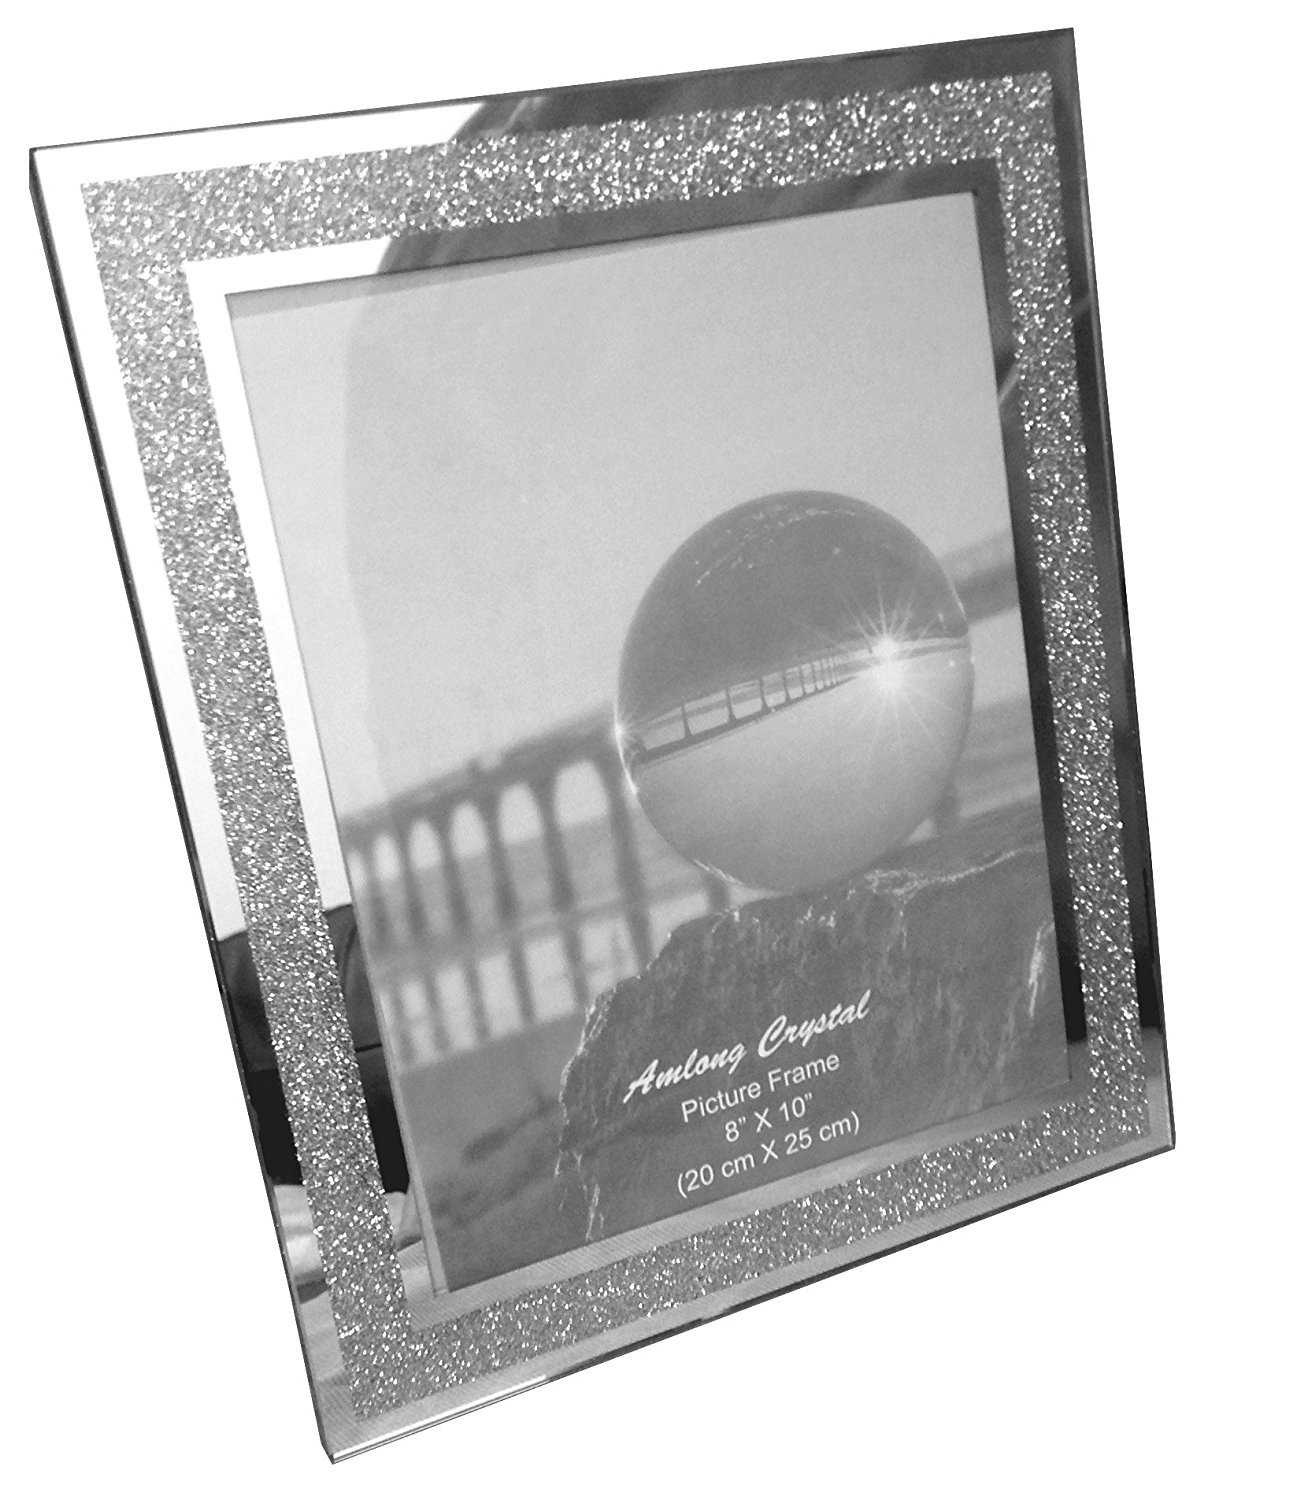 Amlong Crystal Sparkle Mirror Glass Picture Frames 8 x 10 by Amlong Crystal